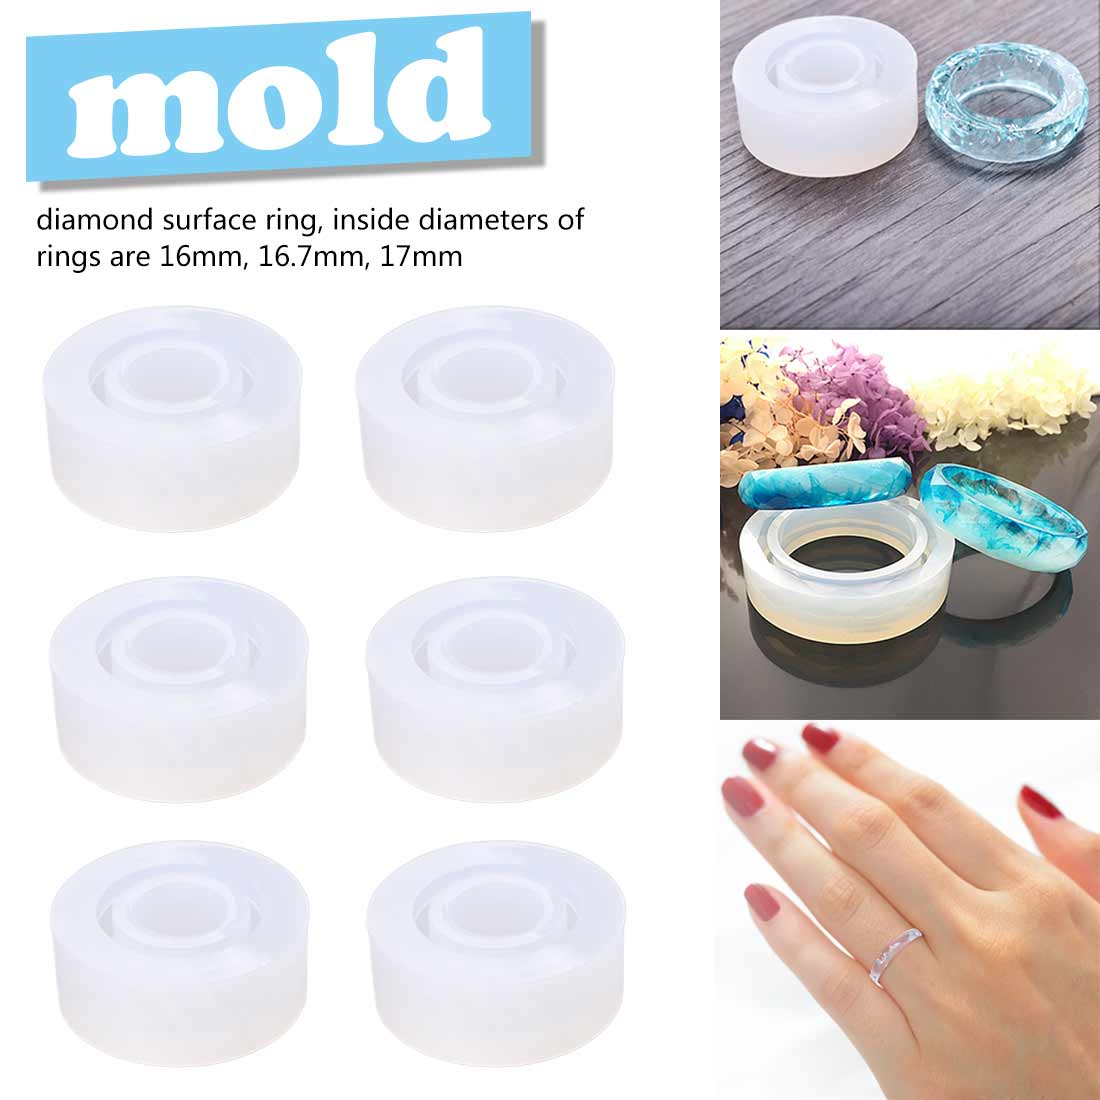 1 Pcs Dried Flower Transparent Silicone Mould Resin Decorative Craft  DIY Epoxy Resin Molds Diamond Shape Ring Mold